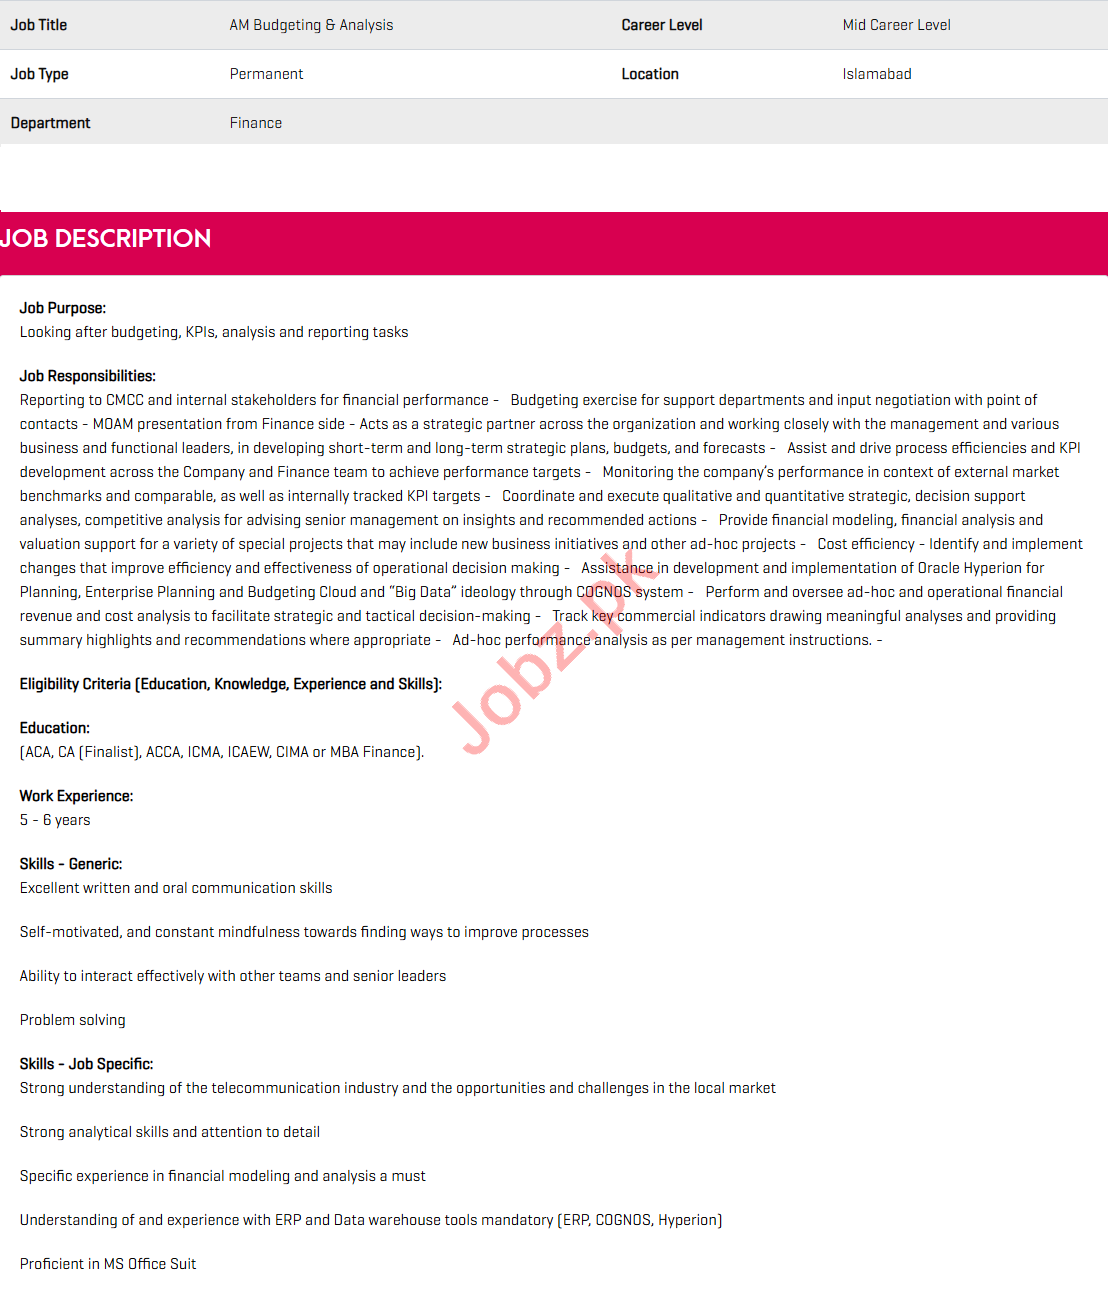 Zong Pakistan Jobs 2020 for AM Budgeting & Analysis